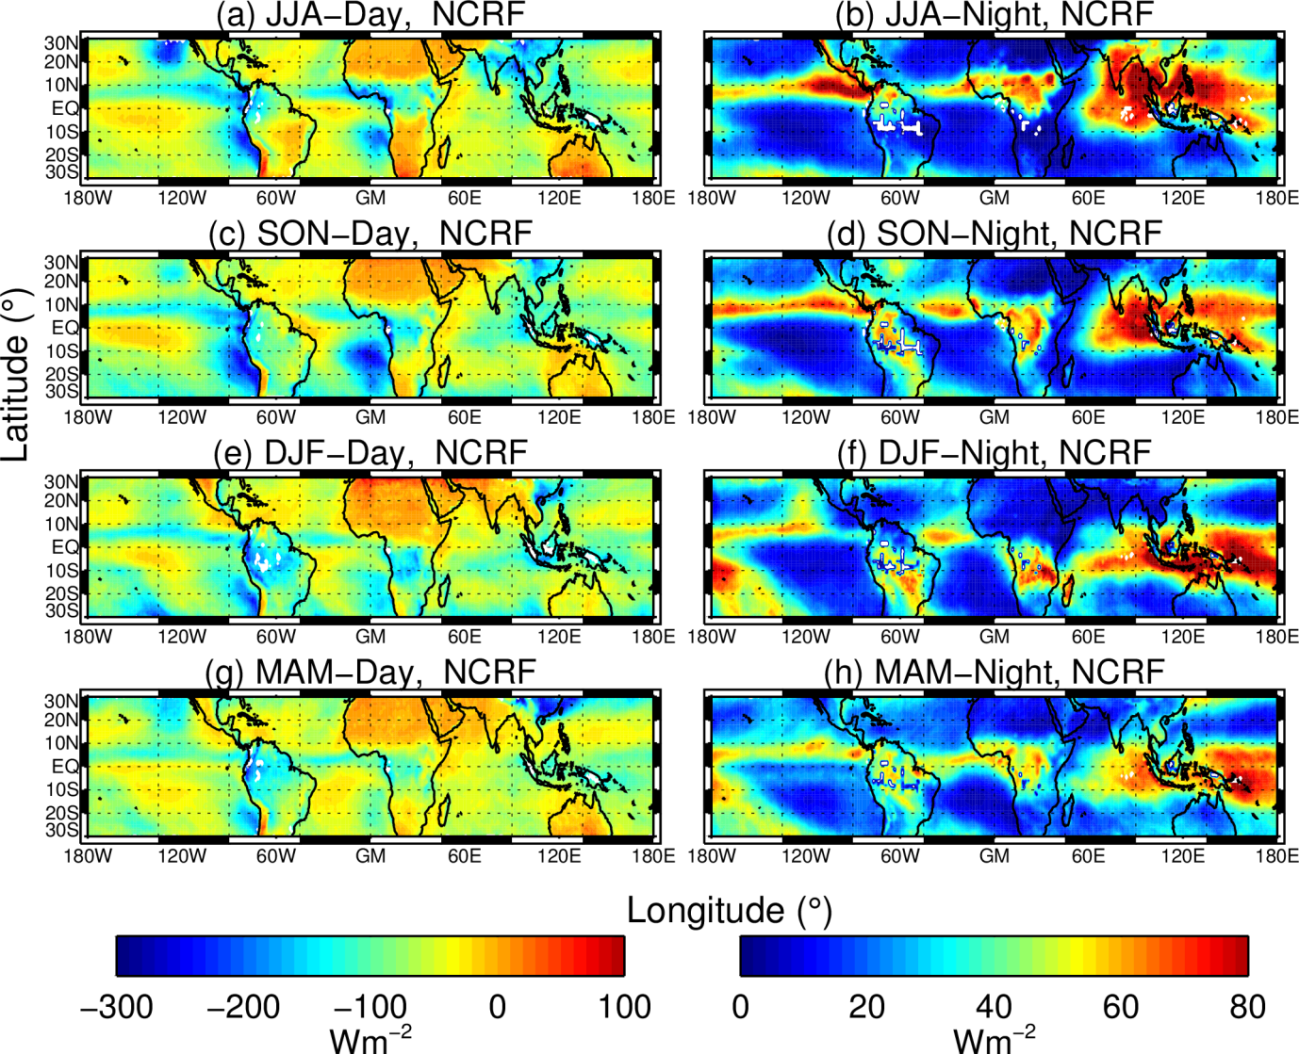 Seasonal mean net cloud radiative forcing (NCRF; unit W m-2) averaged during the daytime (left panel) and nighttime (rightpanel) during the four seasons (averaged for 2012-2016).DJF=Northern Winter (December-February), MAM=Northern Spring (March-May), JJA=Northern Summer (June-August), SON=Northern Autumn (September-November)